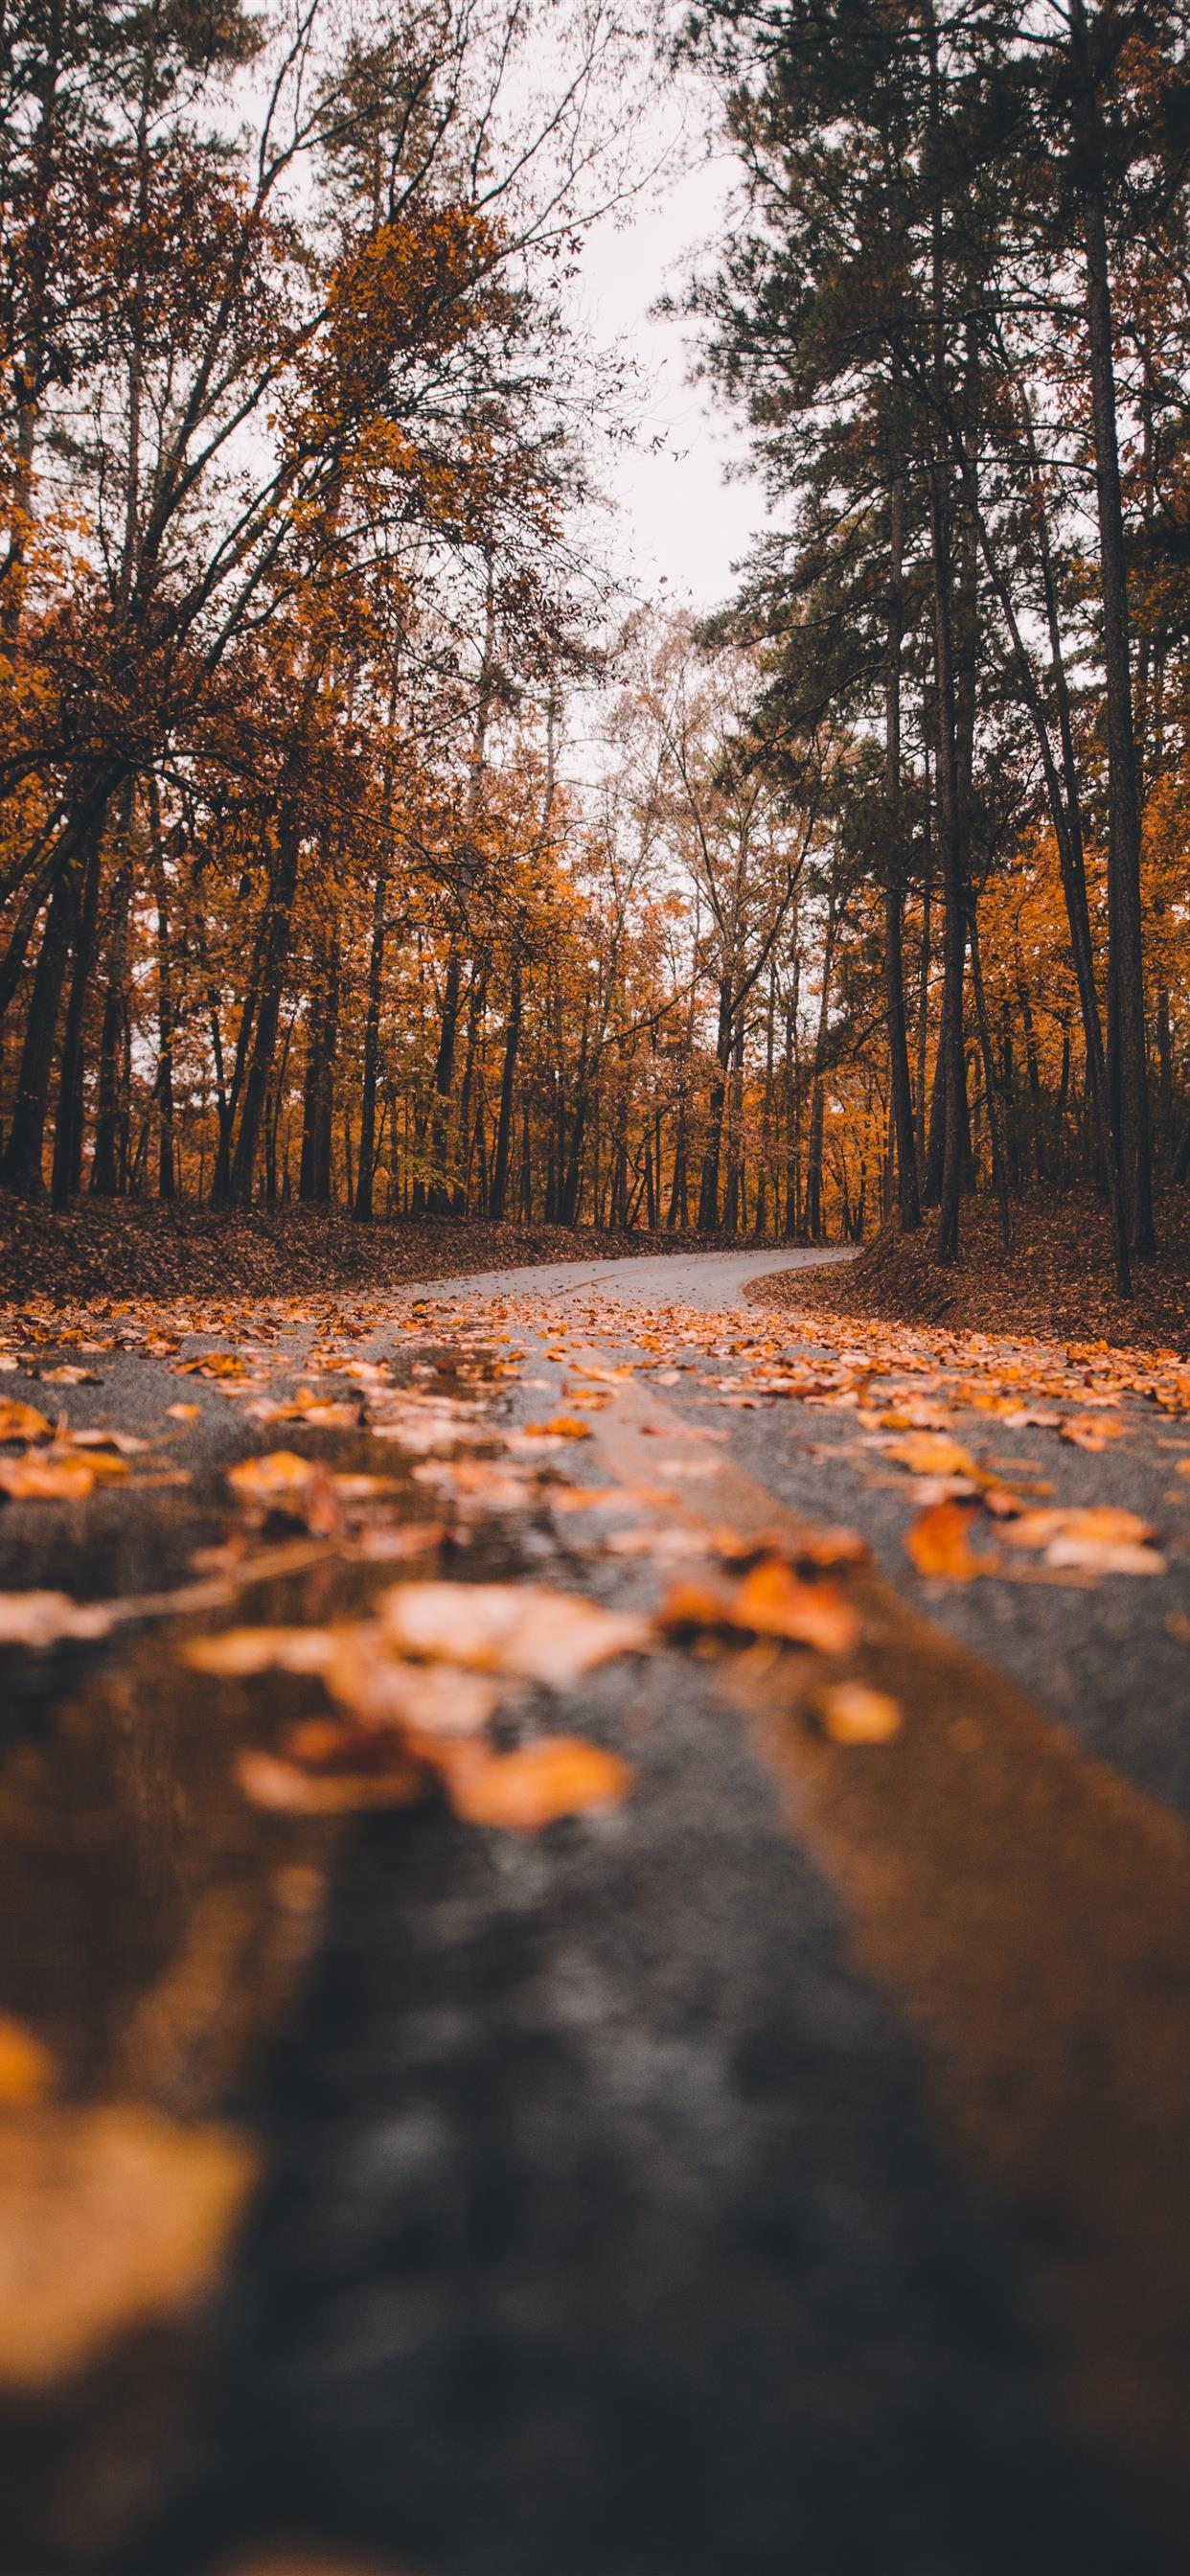 Fall is gone iphone xs max wallpaper